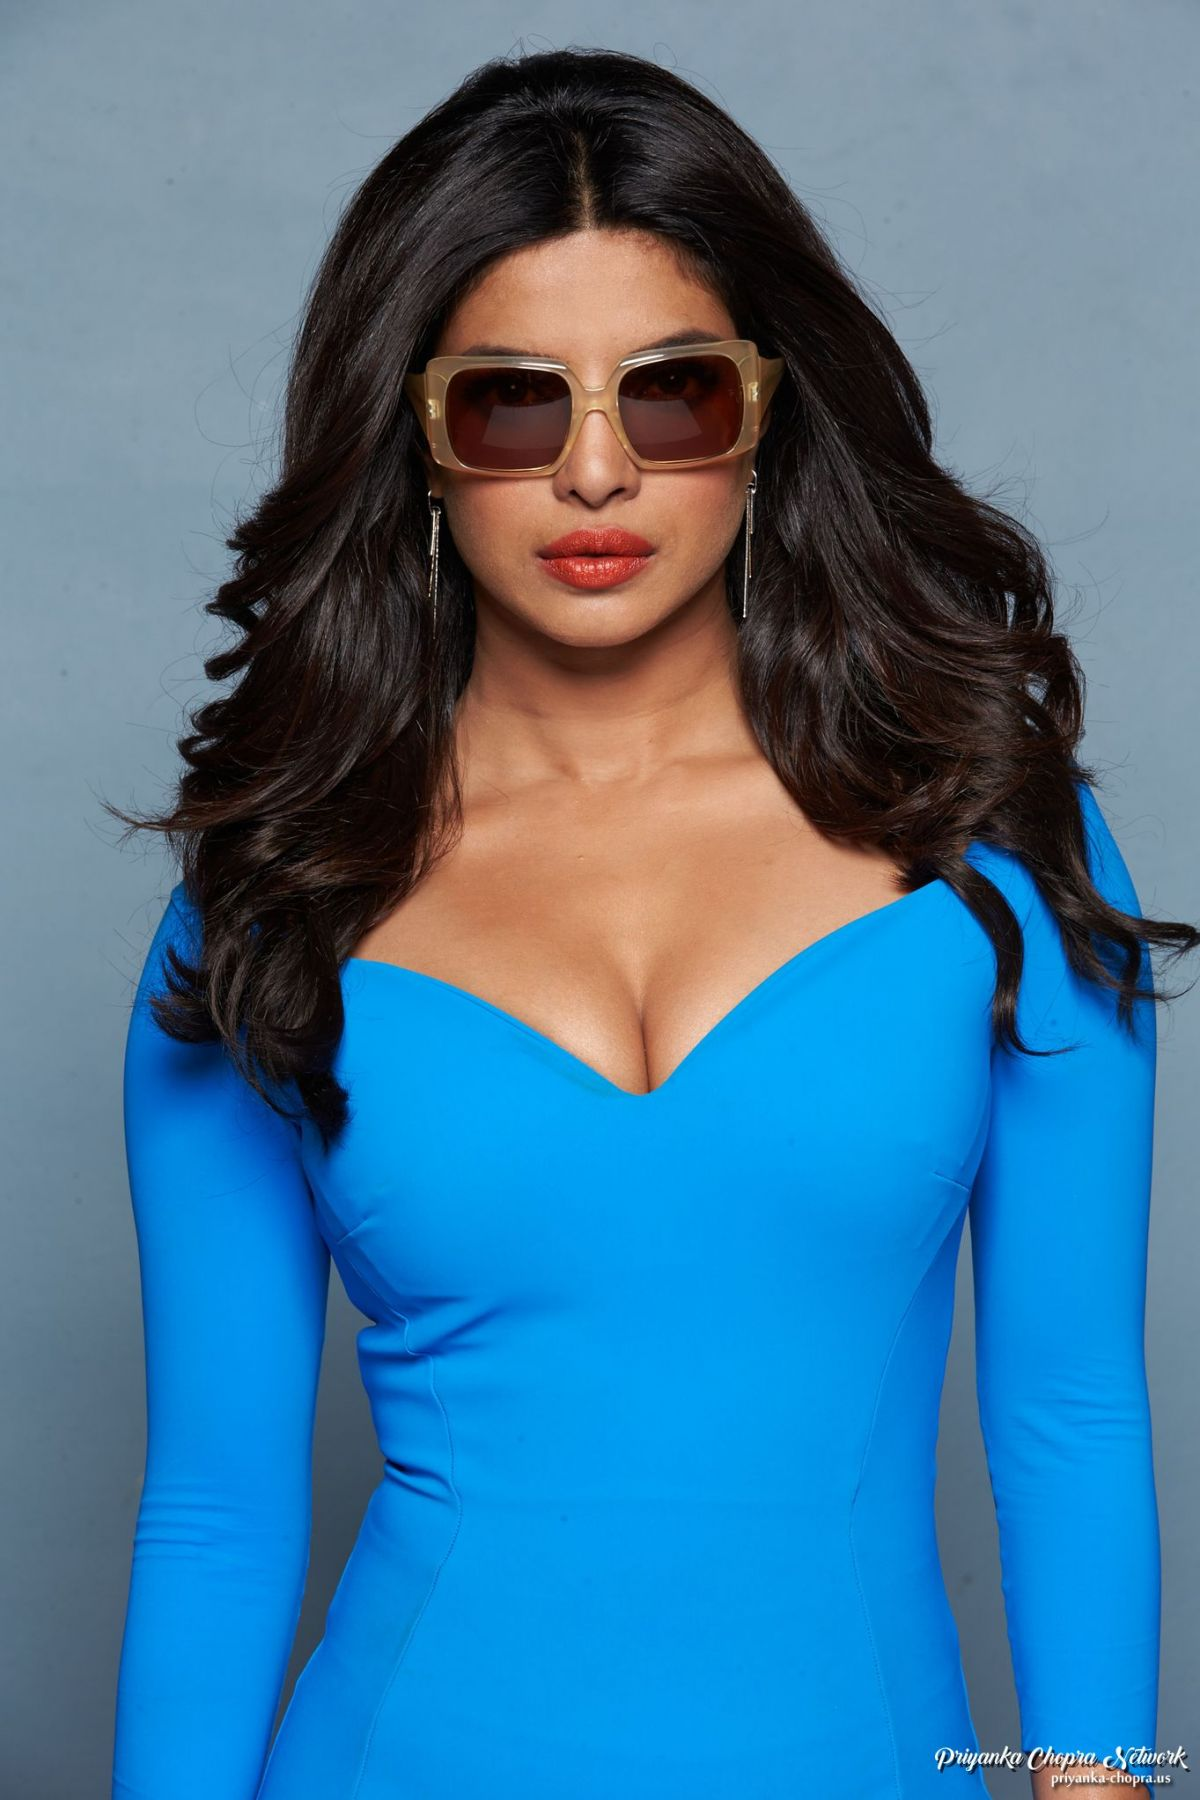 priyanka chopra - photo #13